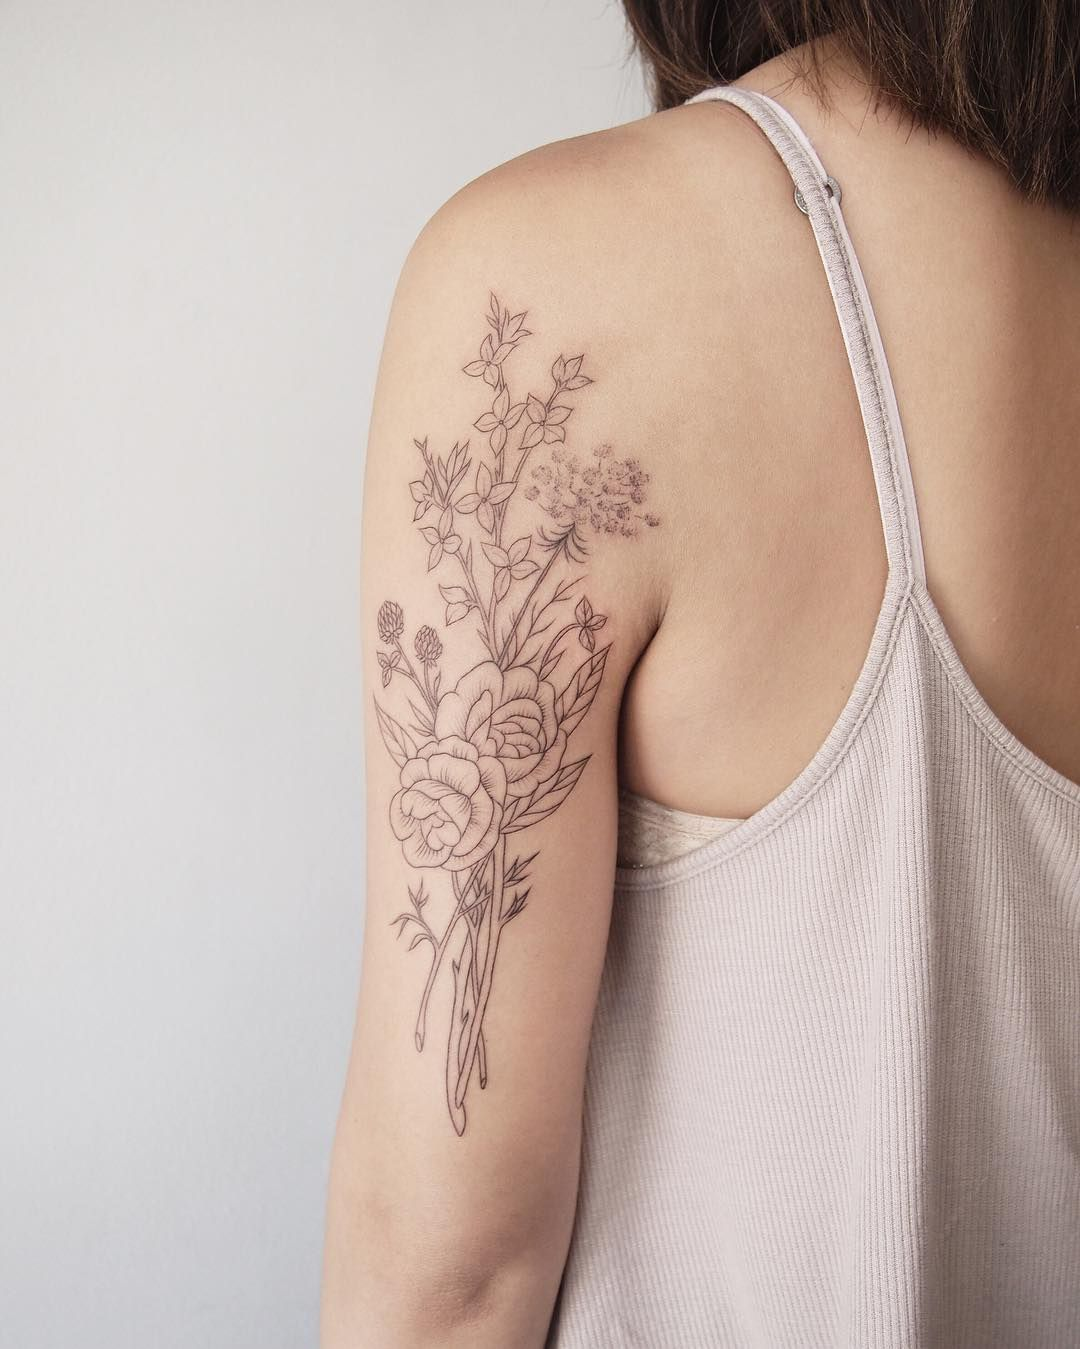 Flowers That Remind Her Of Home Thx Nicolemk Floraltattoos